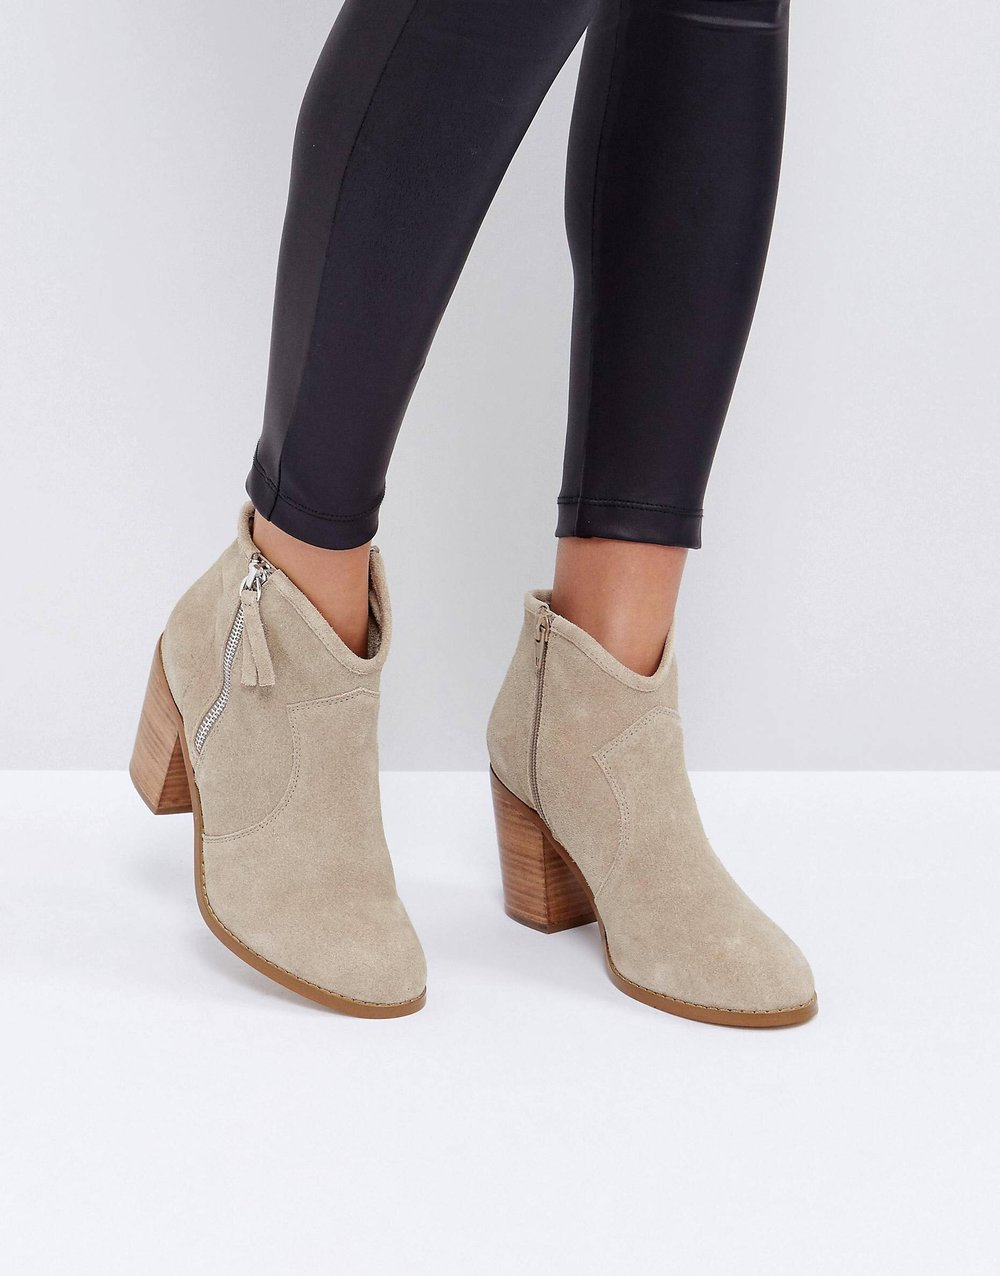 Tan Ankle Booties - Tan ankle booties are a great fall staple to wear with cozy sweaters and scarves. I love how these booties have a little dip in the front - any boots with that feature help to elongate the look of your legs from the front!